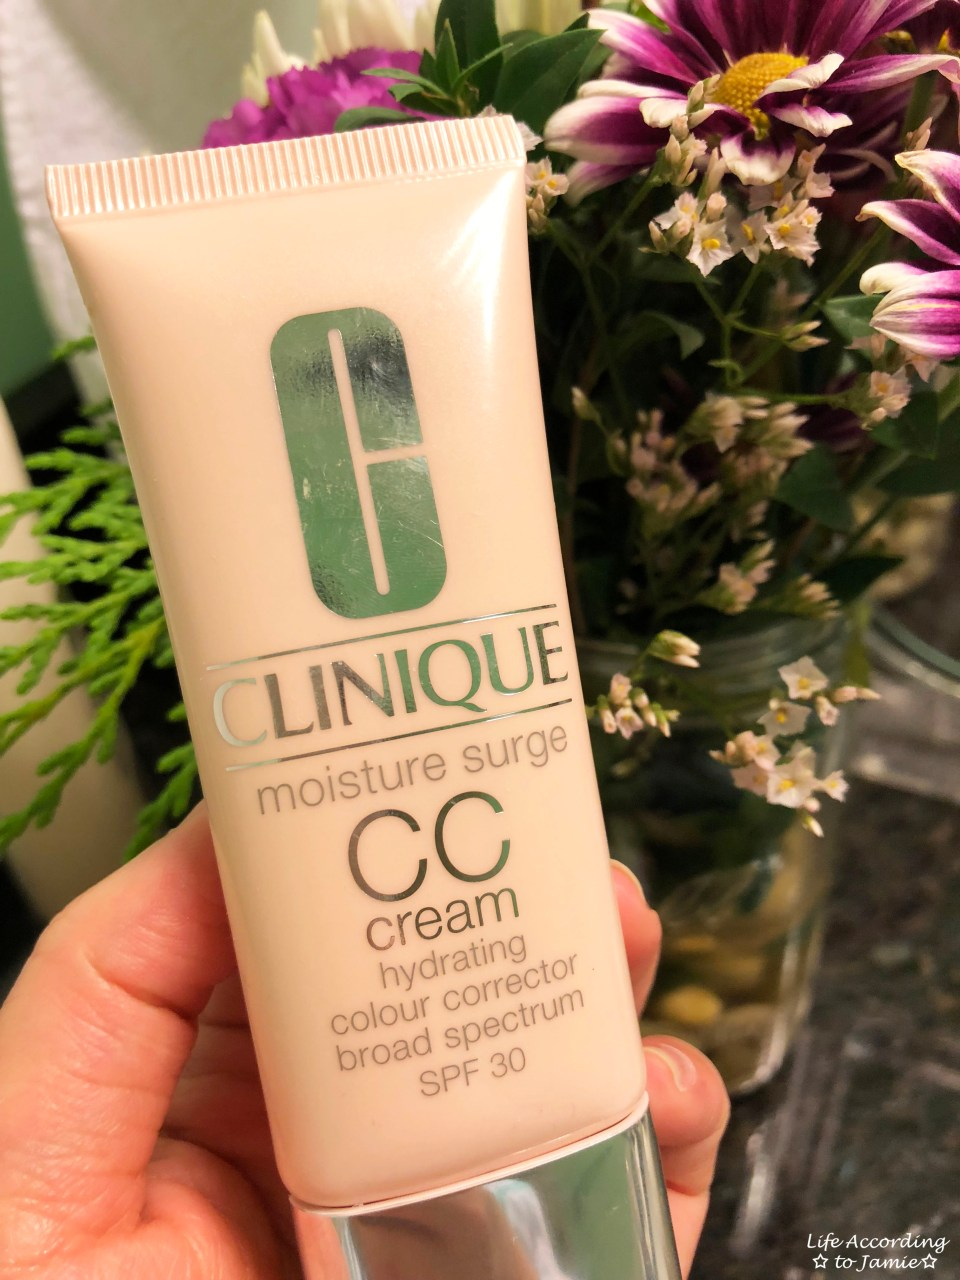 Clinique Moisture Surge CC Cream 1